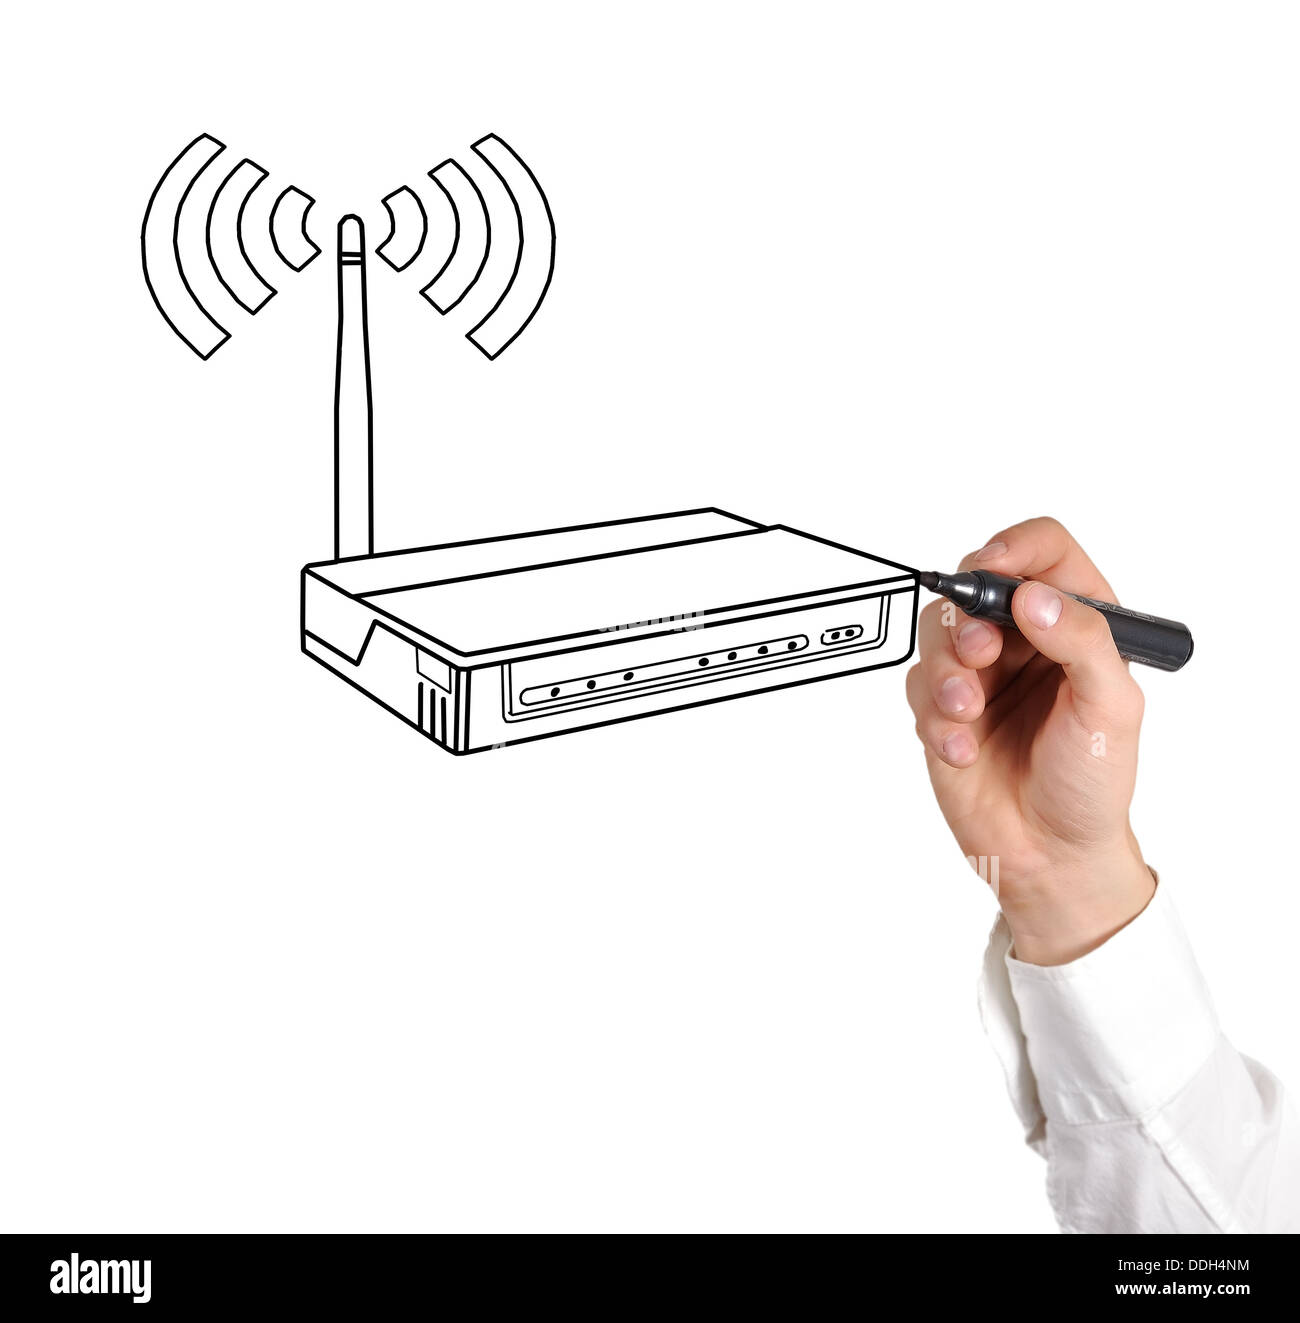 drawing router - Stock Image